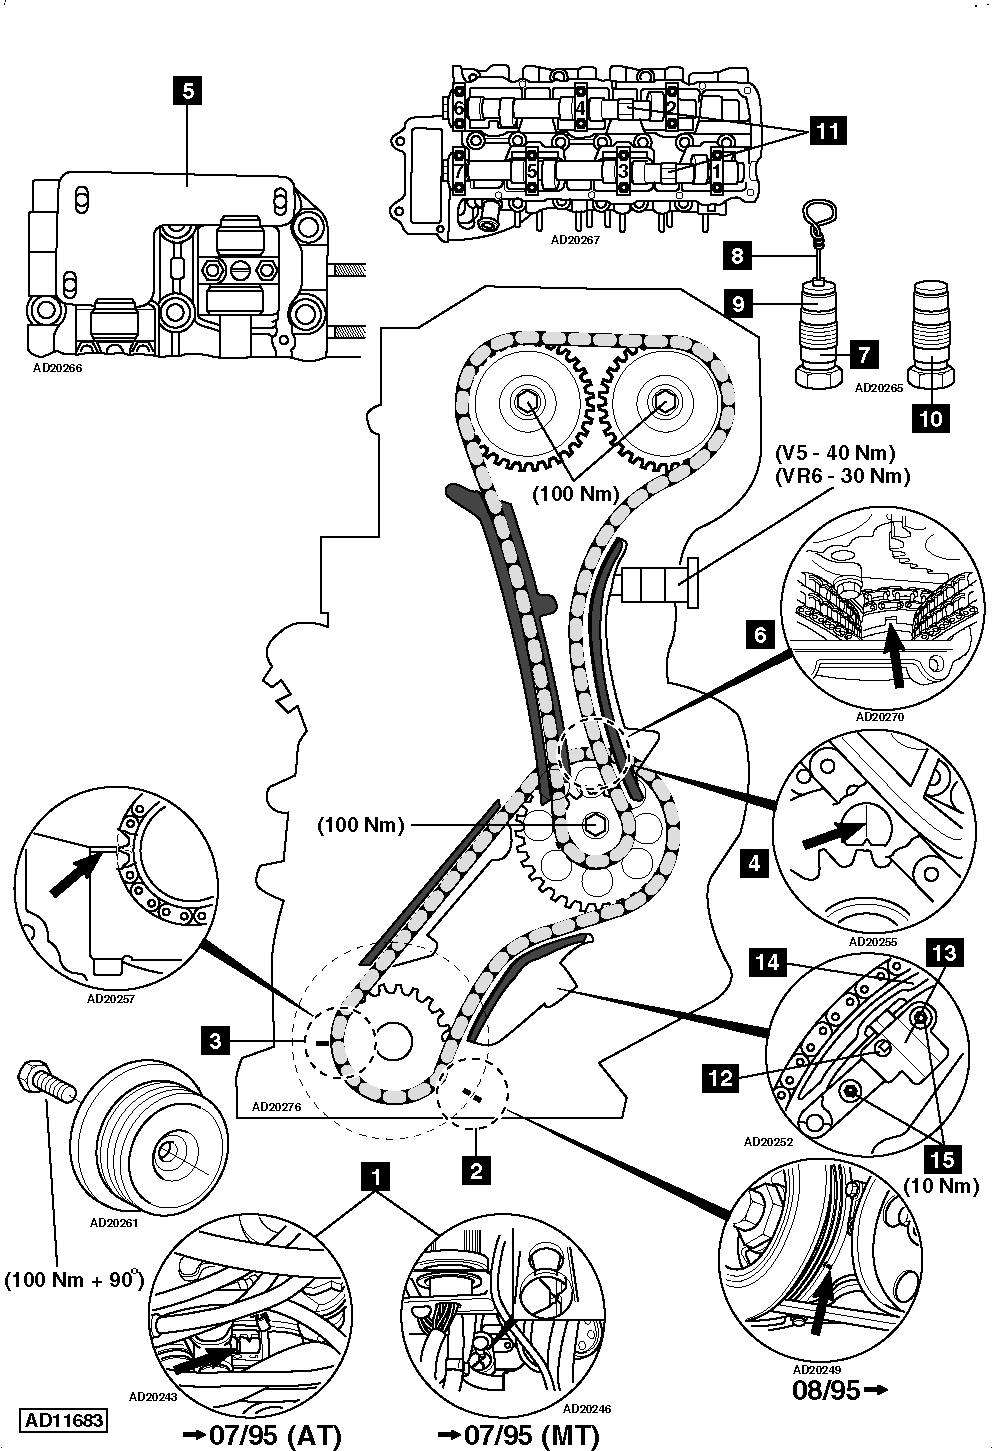 medium resolution of v5 engine diagram wiring library rh 16 skriptoase de golf v5 engine diagram vw golf v5 engine diagram